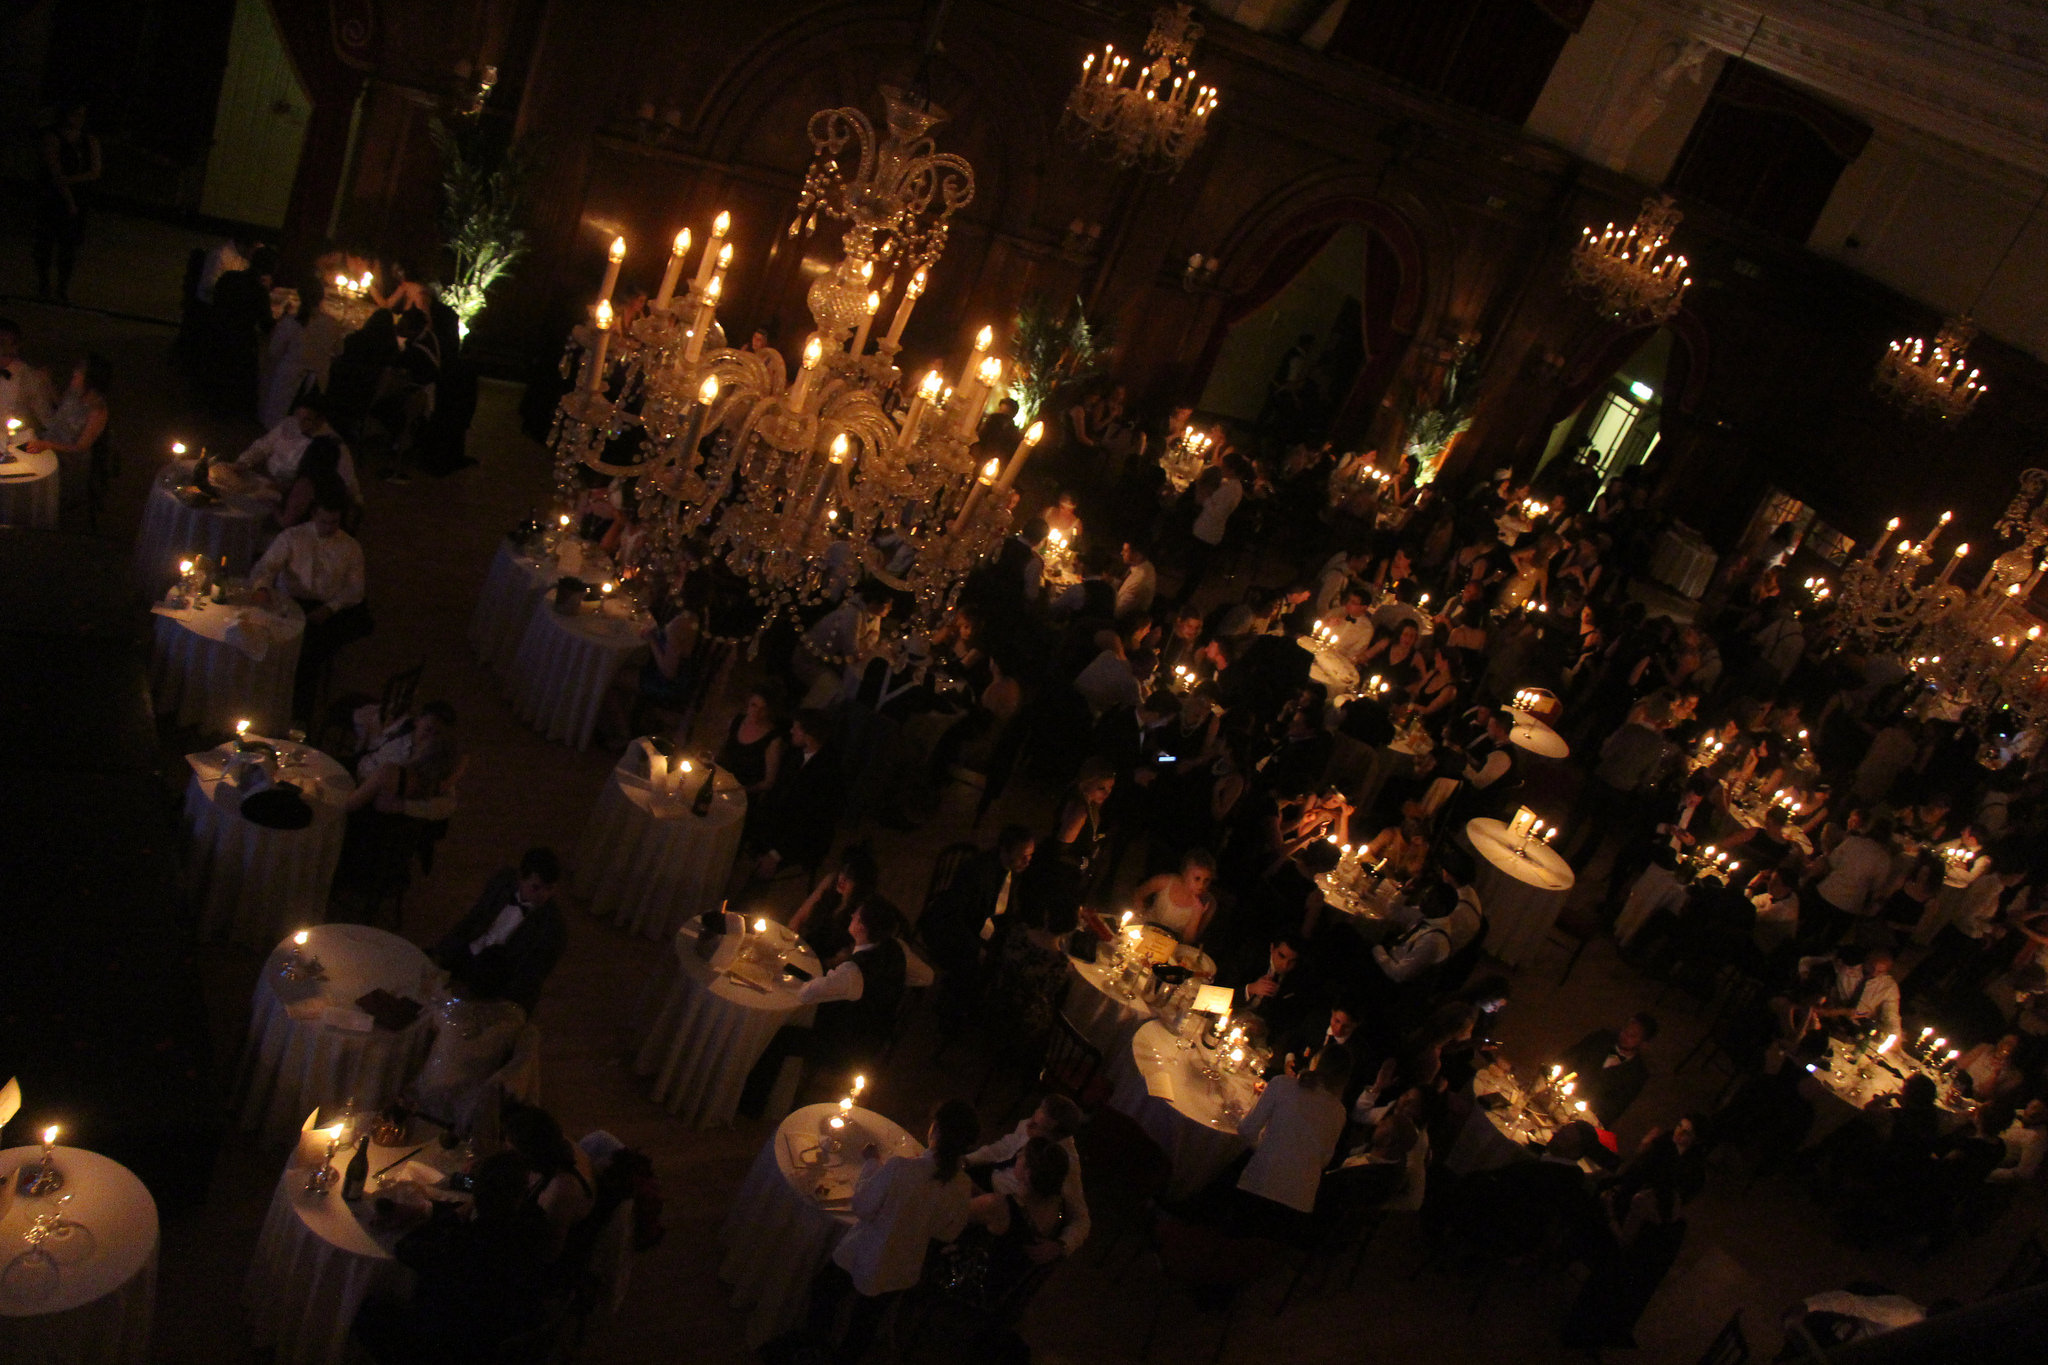 Chandeliers and candlelit tables in the ballroom